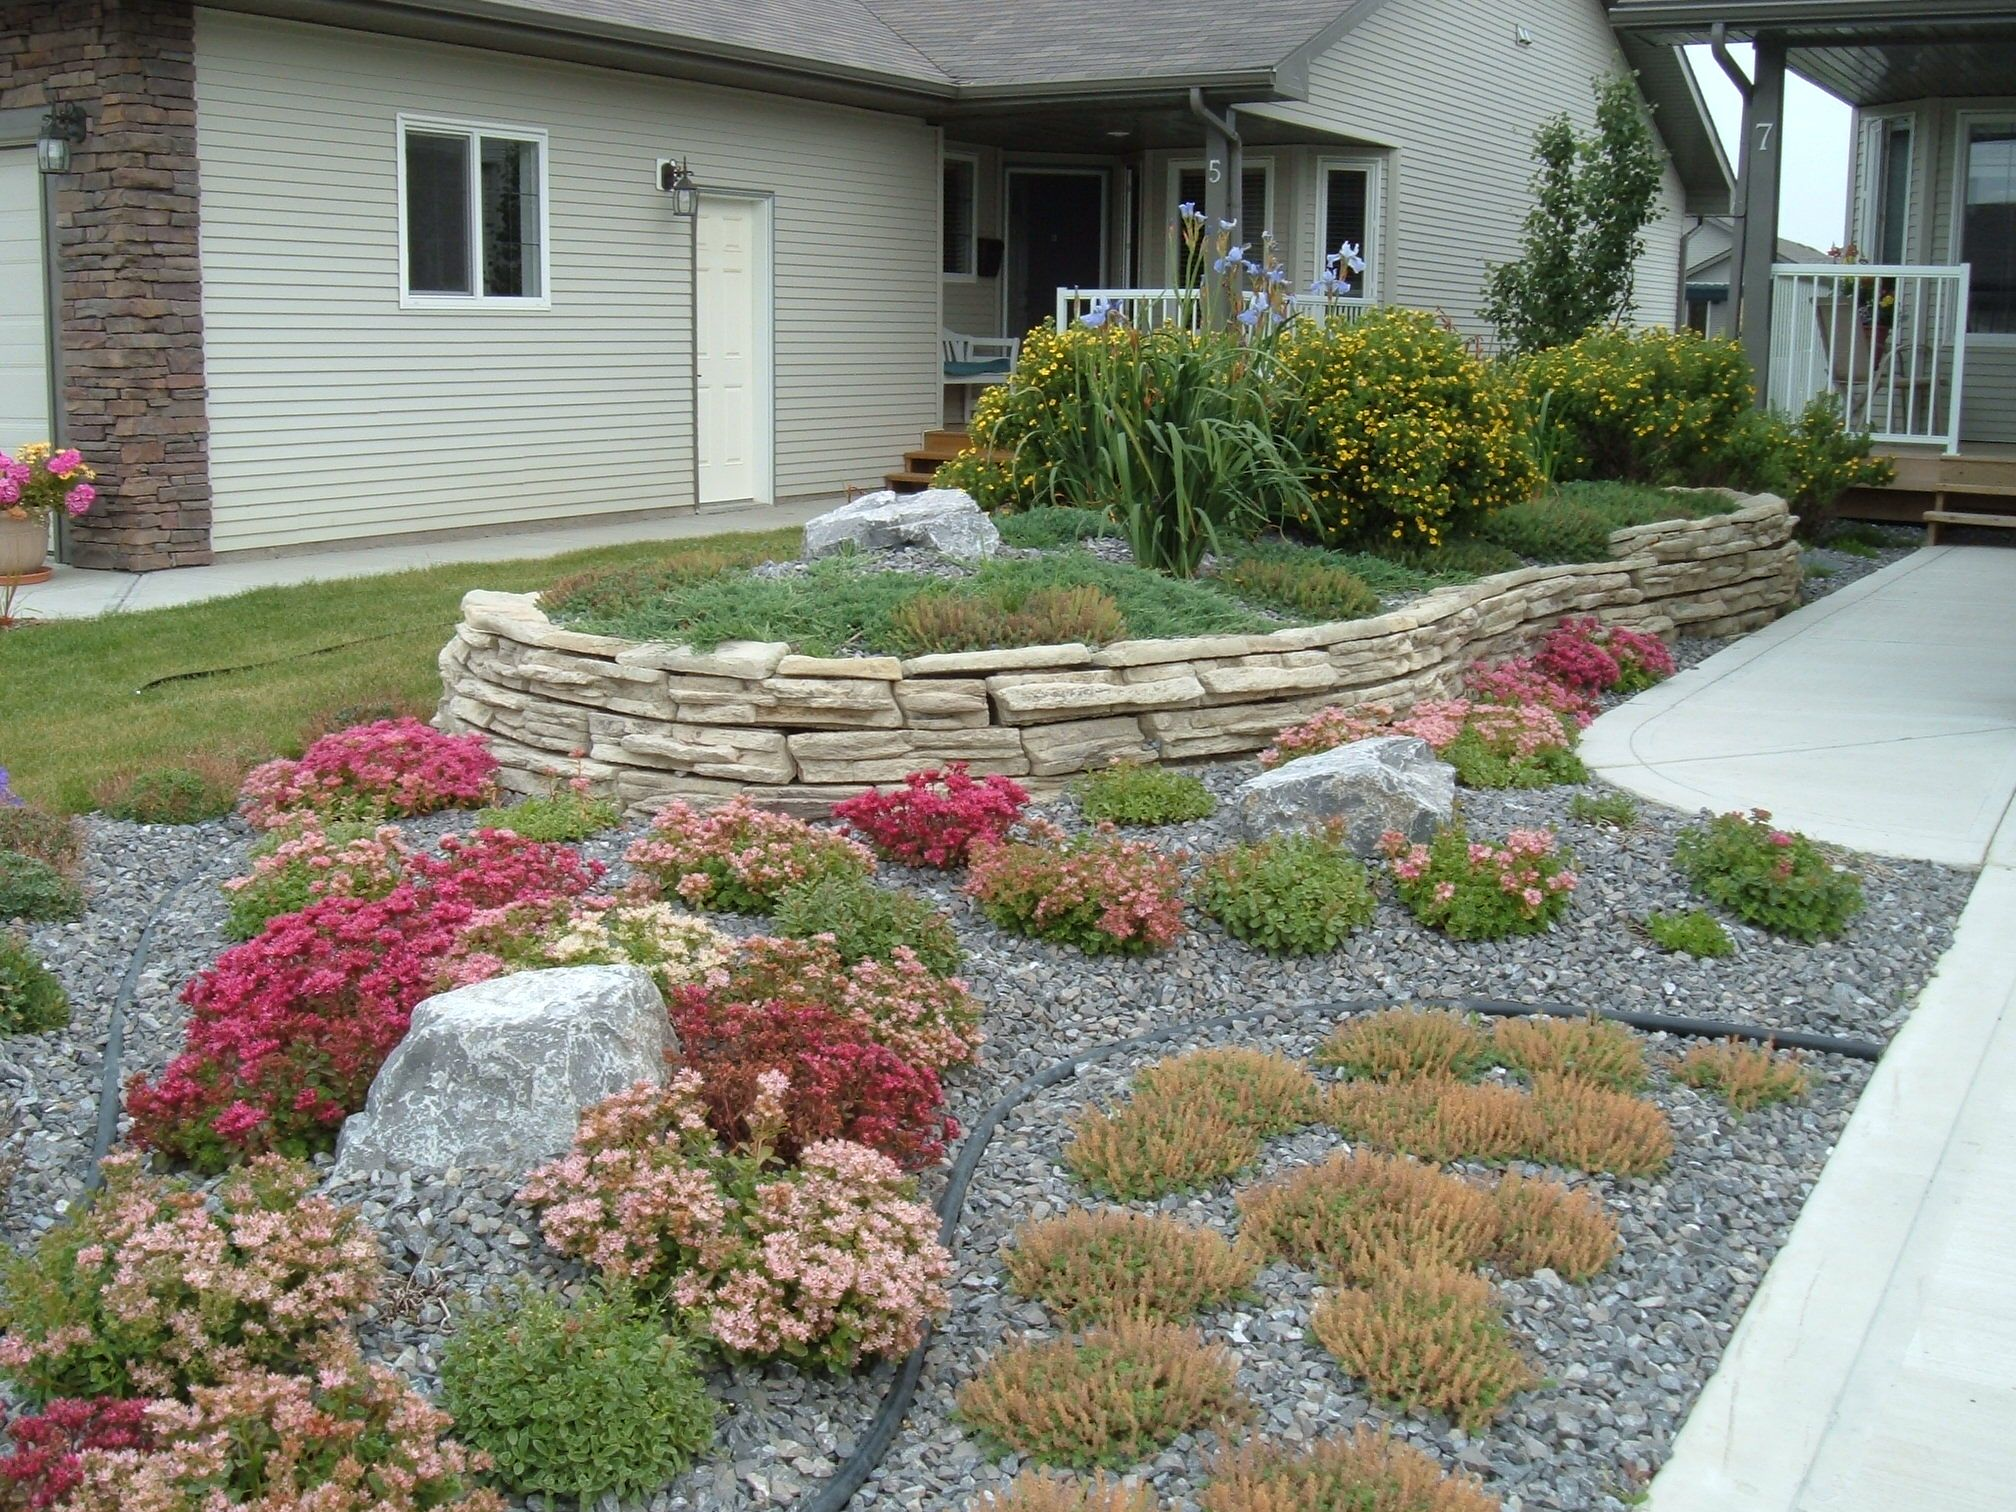 Minimal maintenance landscaping a no lawn front yard with for Small no maintenance garden